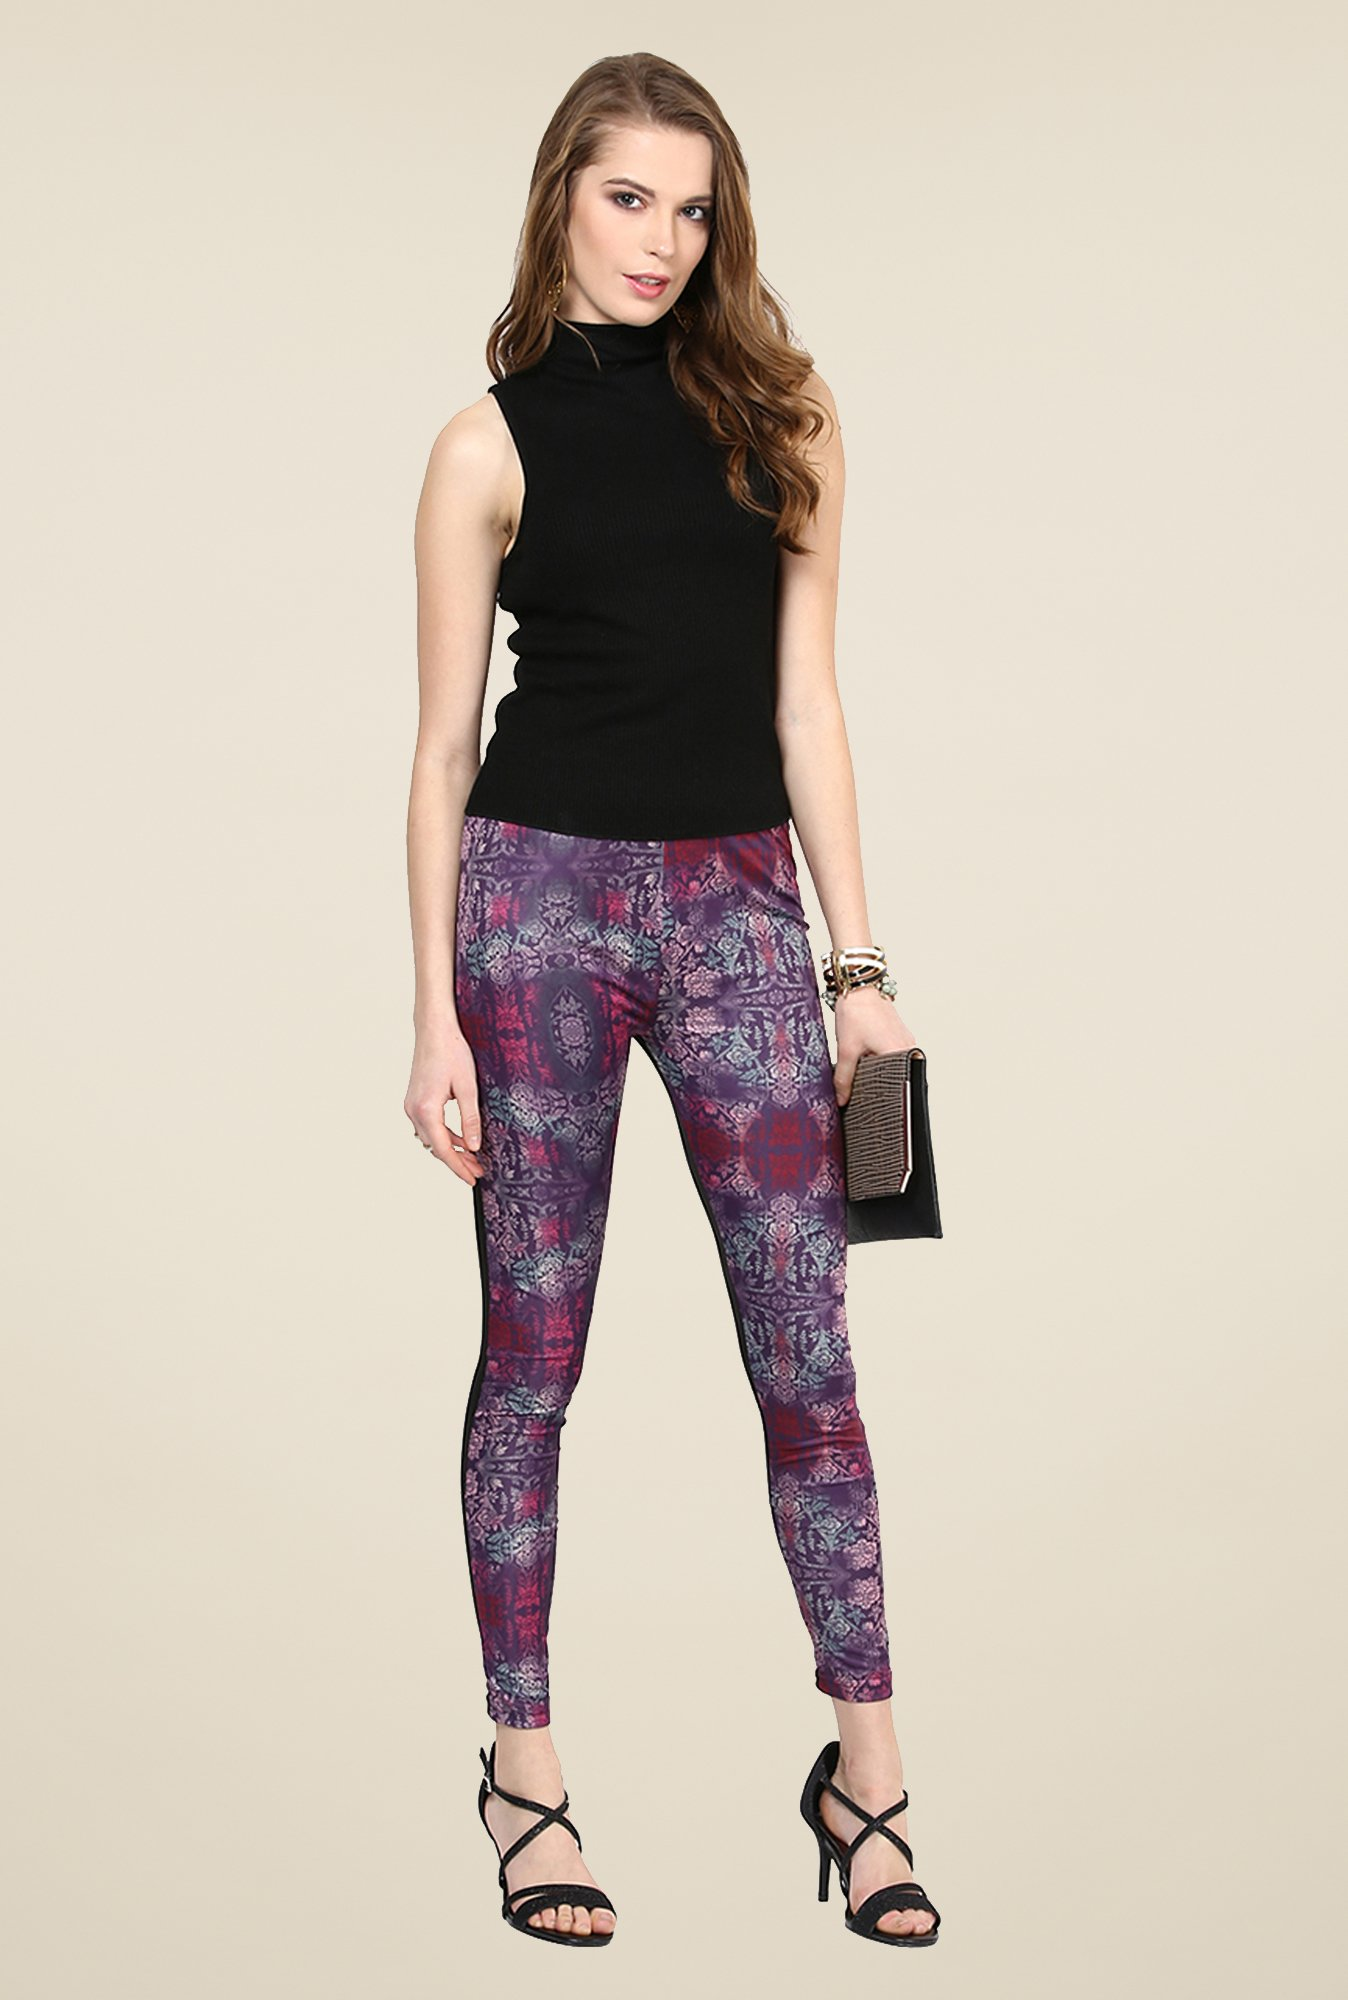 Yepme Ellise Purple & Black Party Leggings